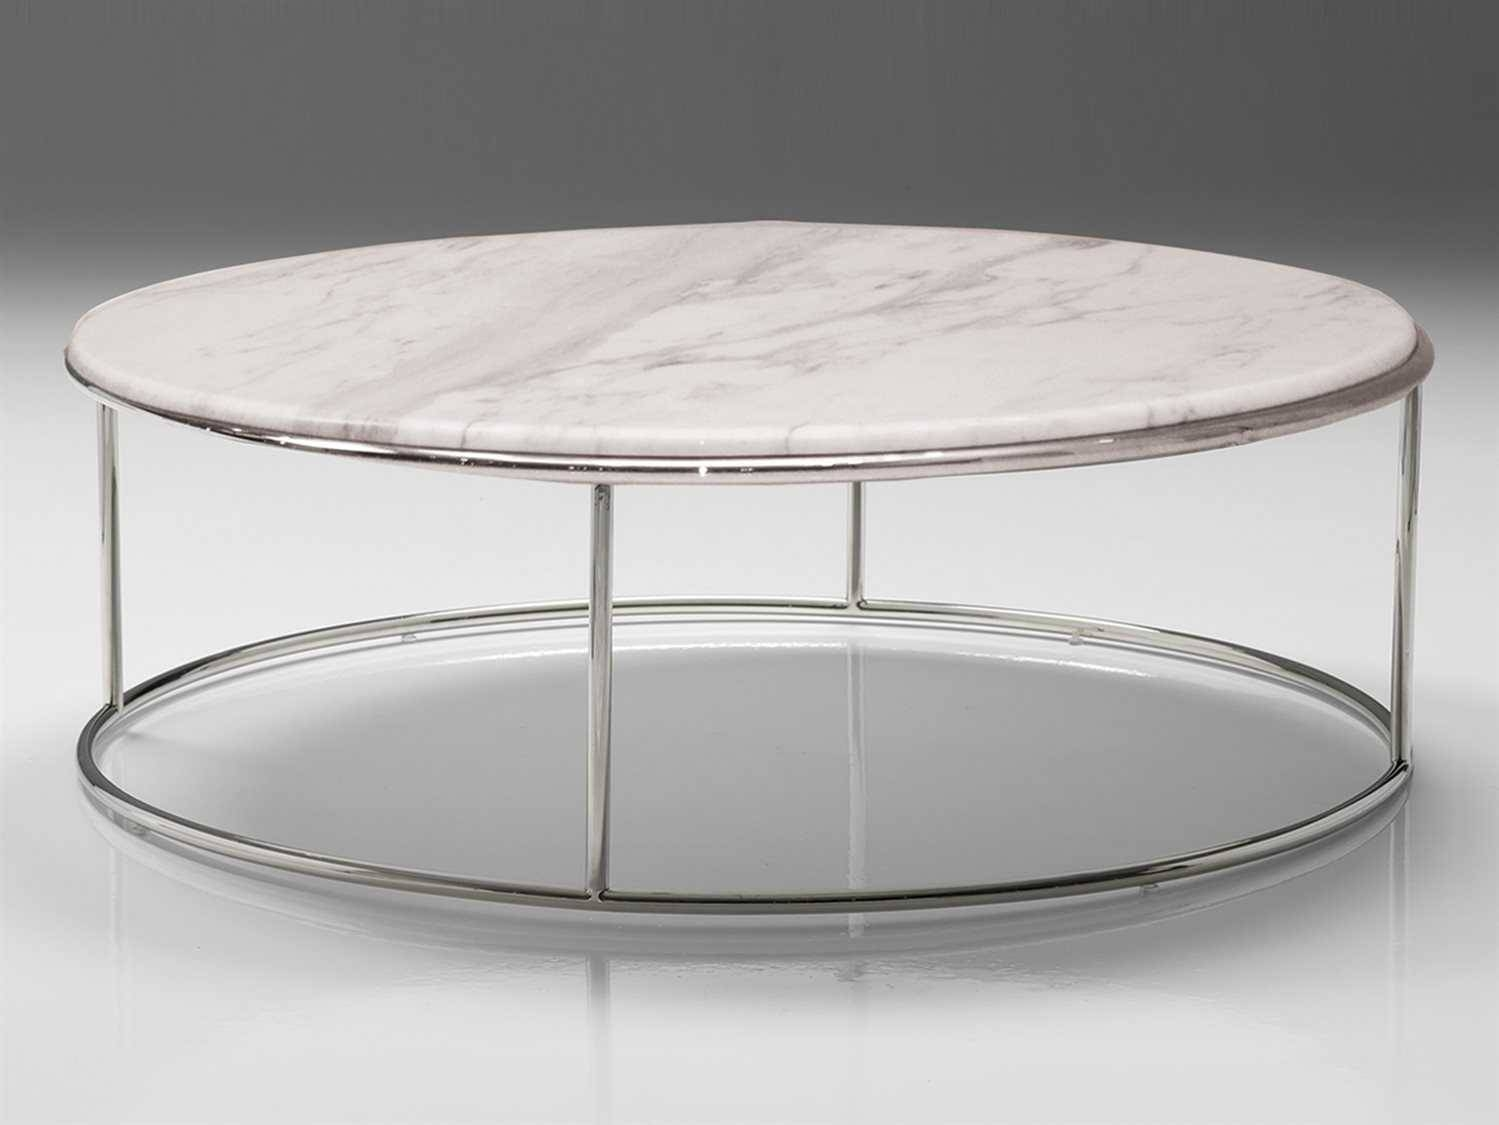 Coffee Table: Surprising Round Marble Coffee Table Designs Marble with regard to Marble Round Coffee Tables (Image 12 of 30)